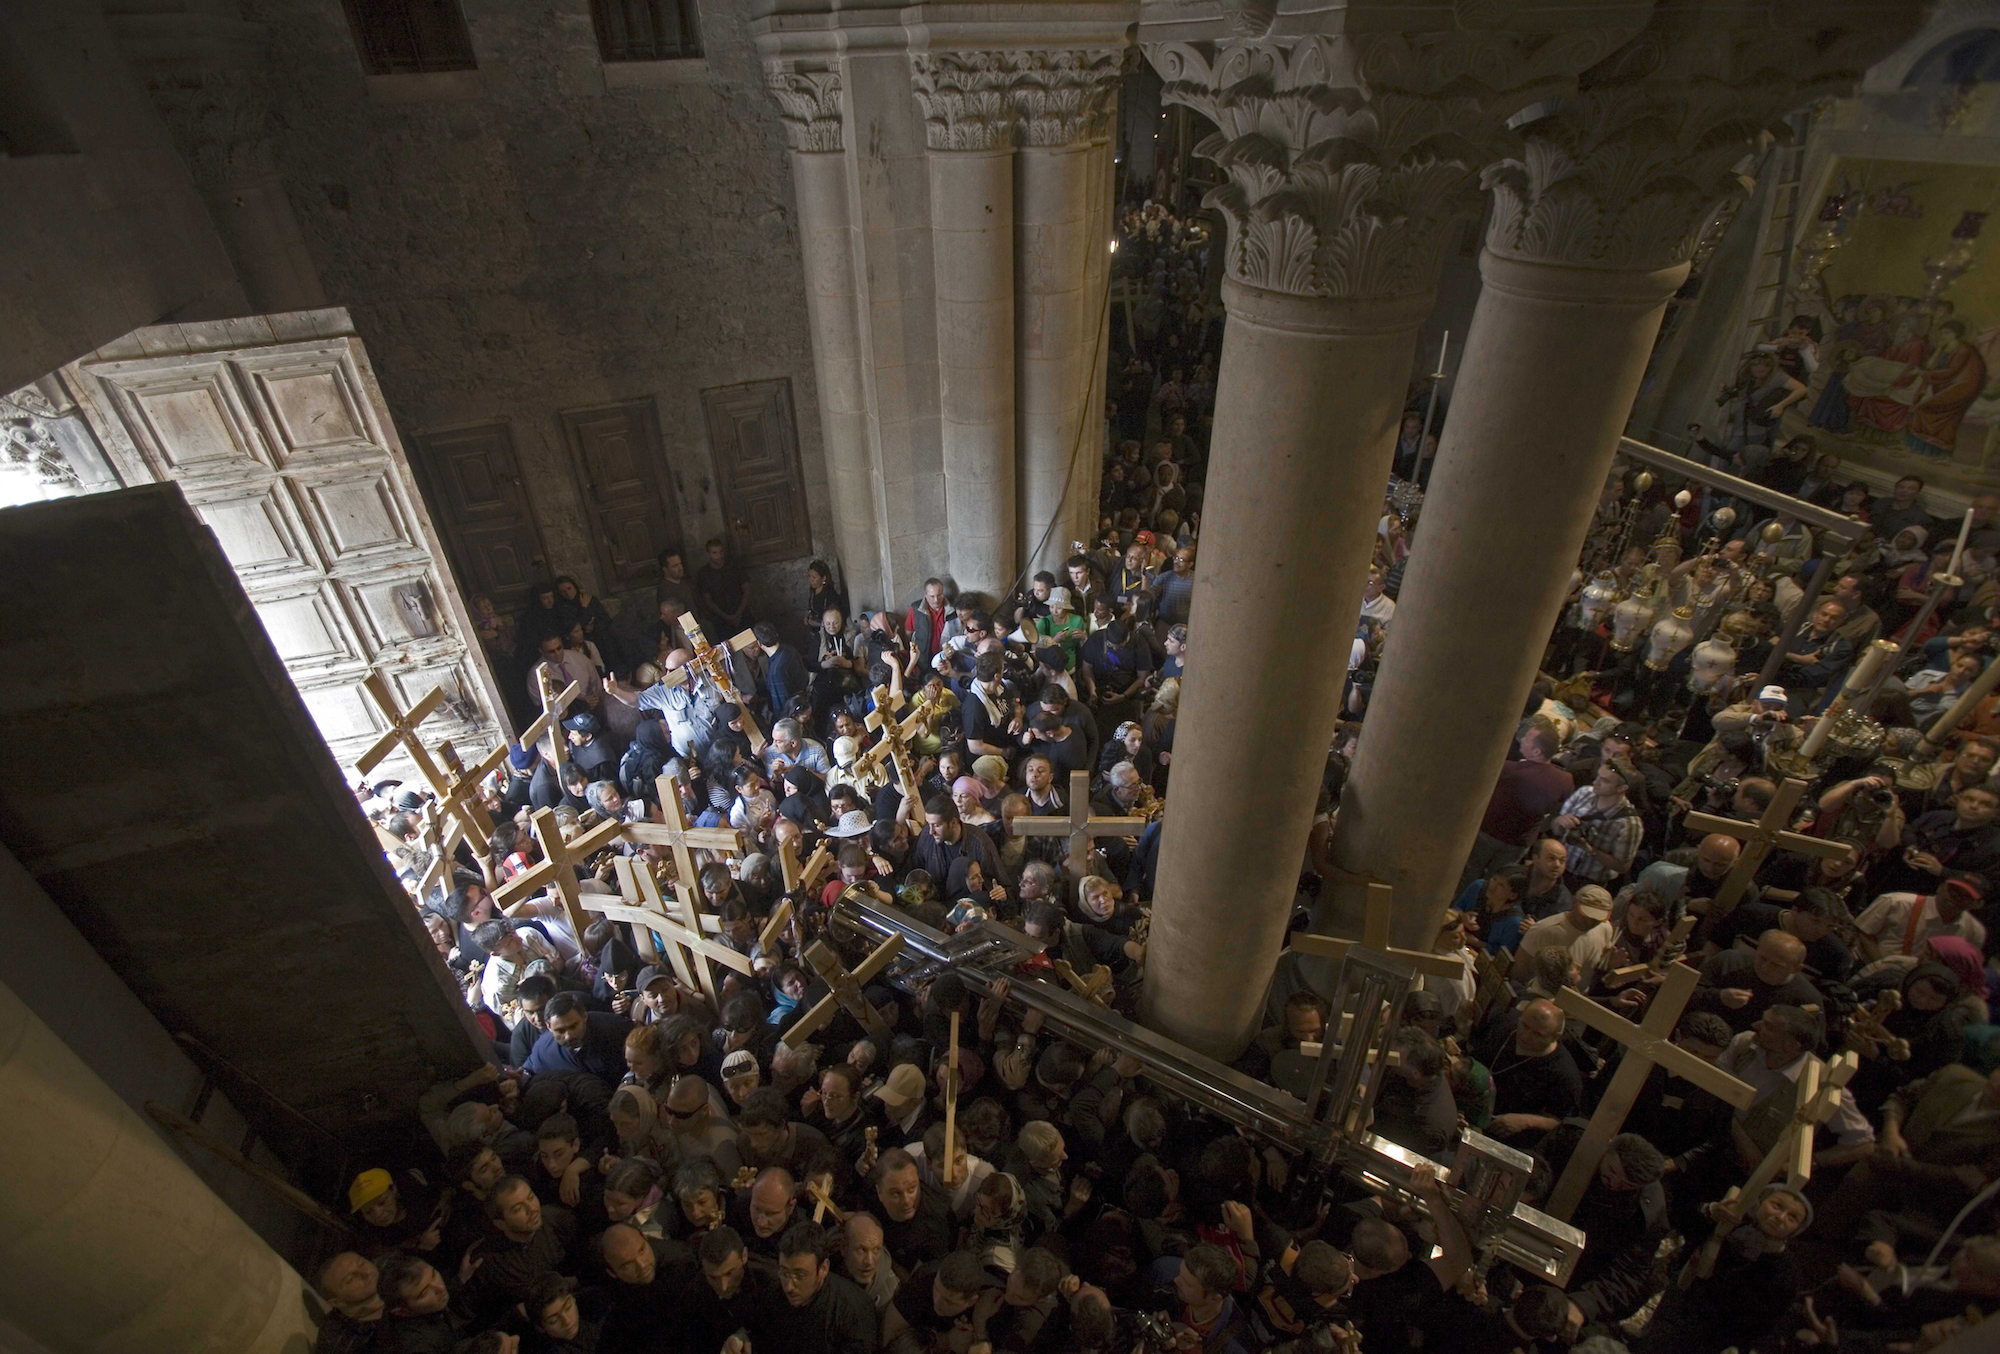 Christian pilgrims carry crosses inside the Church of the Holy Sepulchre during a Good Friday procession in Jerusalem's Old city April 2, 2010. Christian worshippers retraced the traditional route Jesus Christ took along the Via Dolorosa to his crucifixion in the Church of the Holy Sepulchre. (Photo by Heidi Levine/Sipa Press)